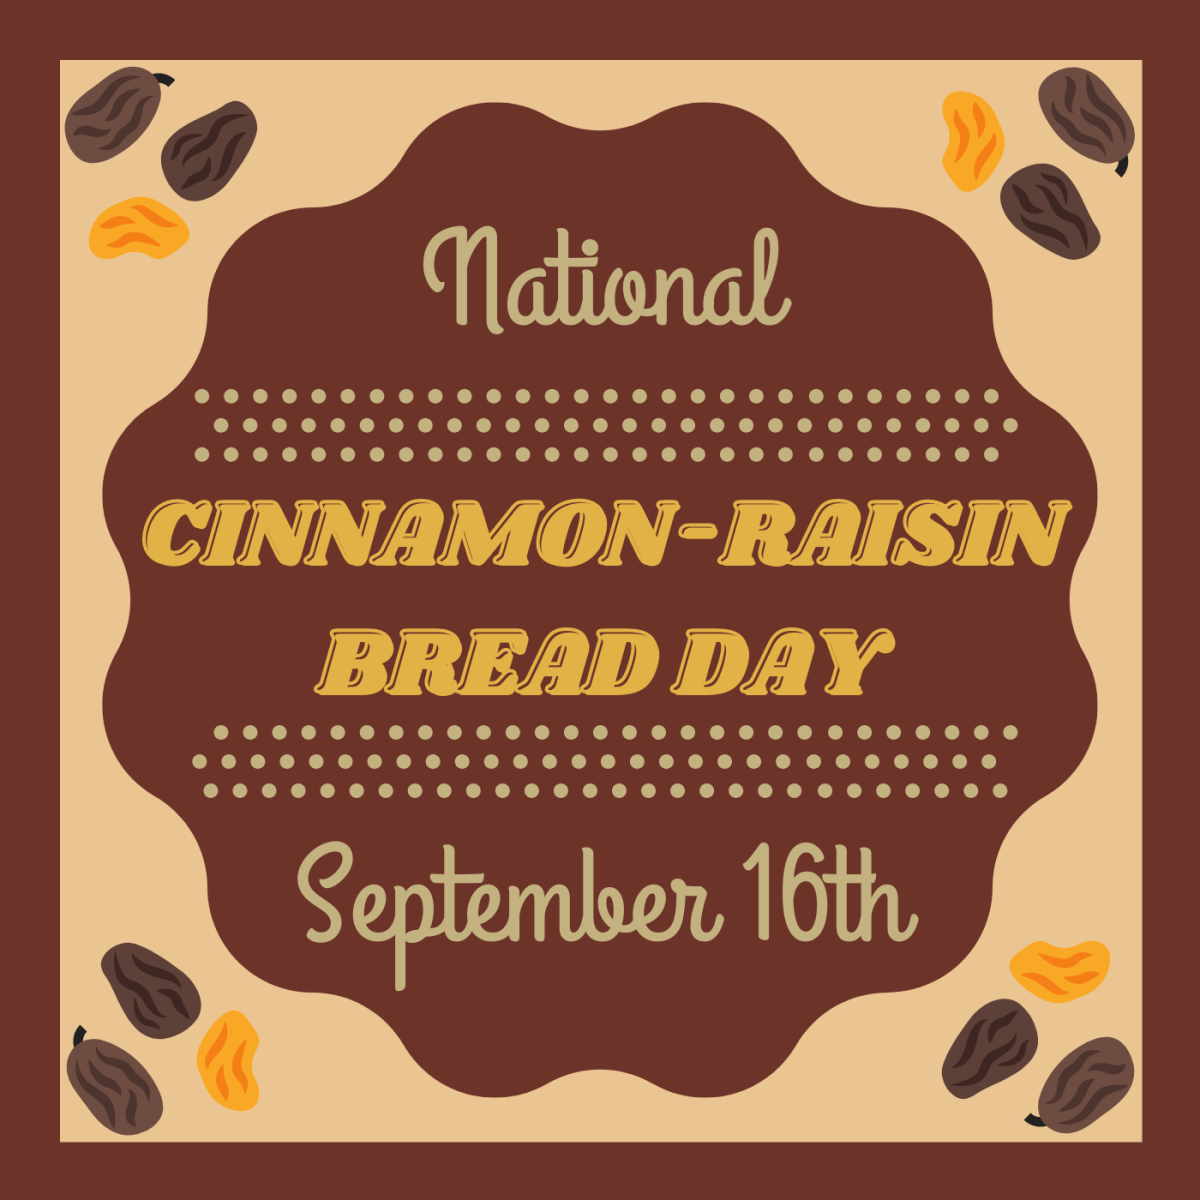 September 16th is National Cinnamon-Raisin Bread Day!